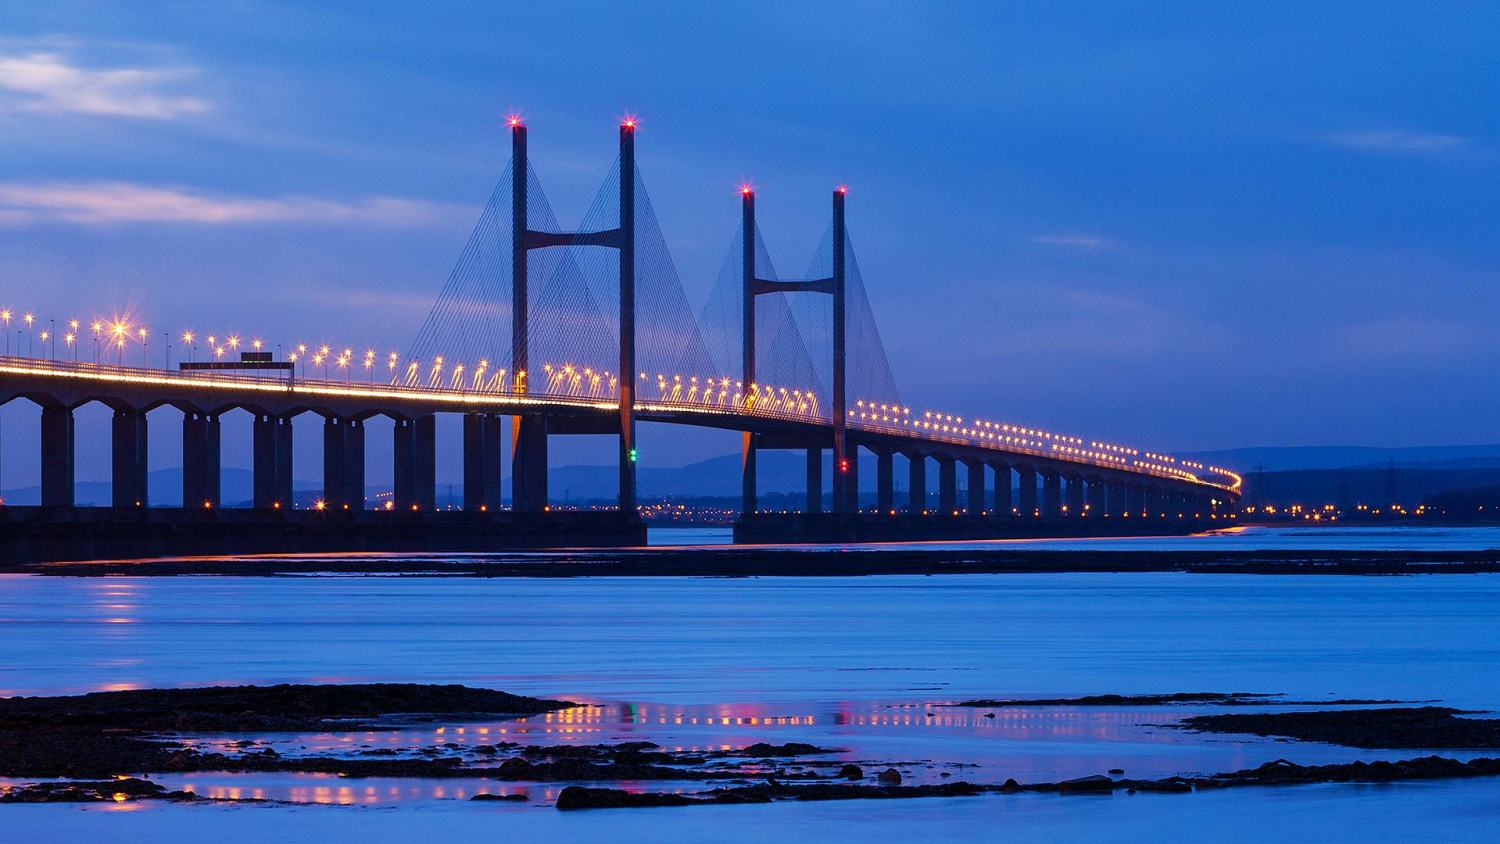 Severn Crossing at night